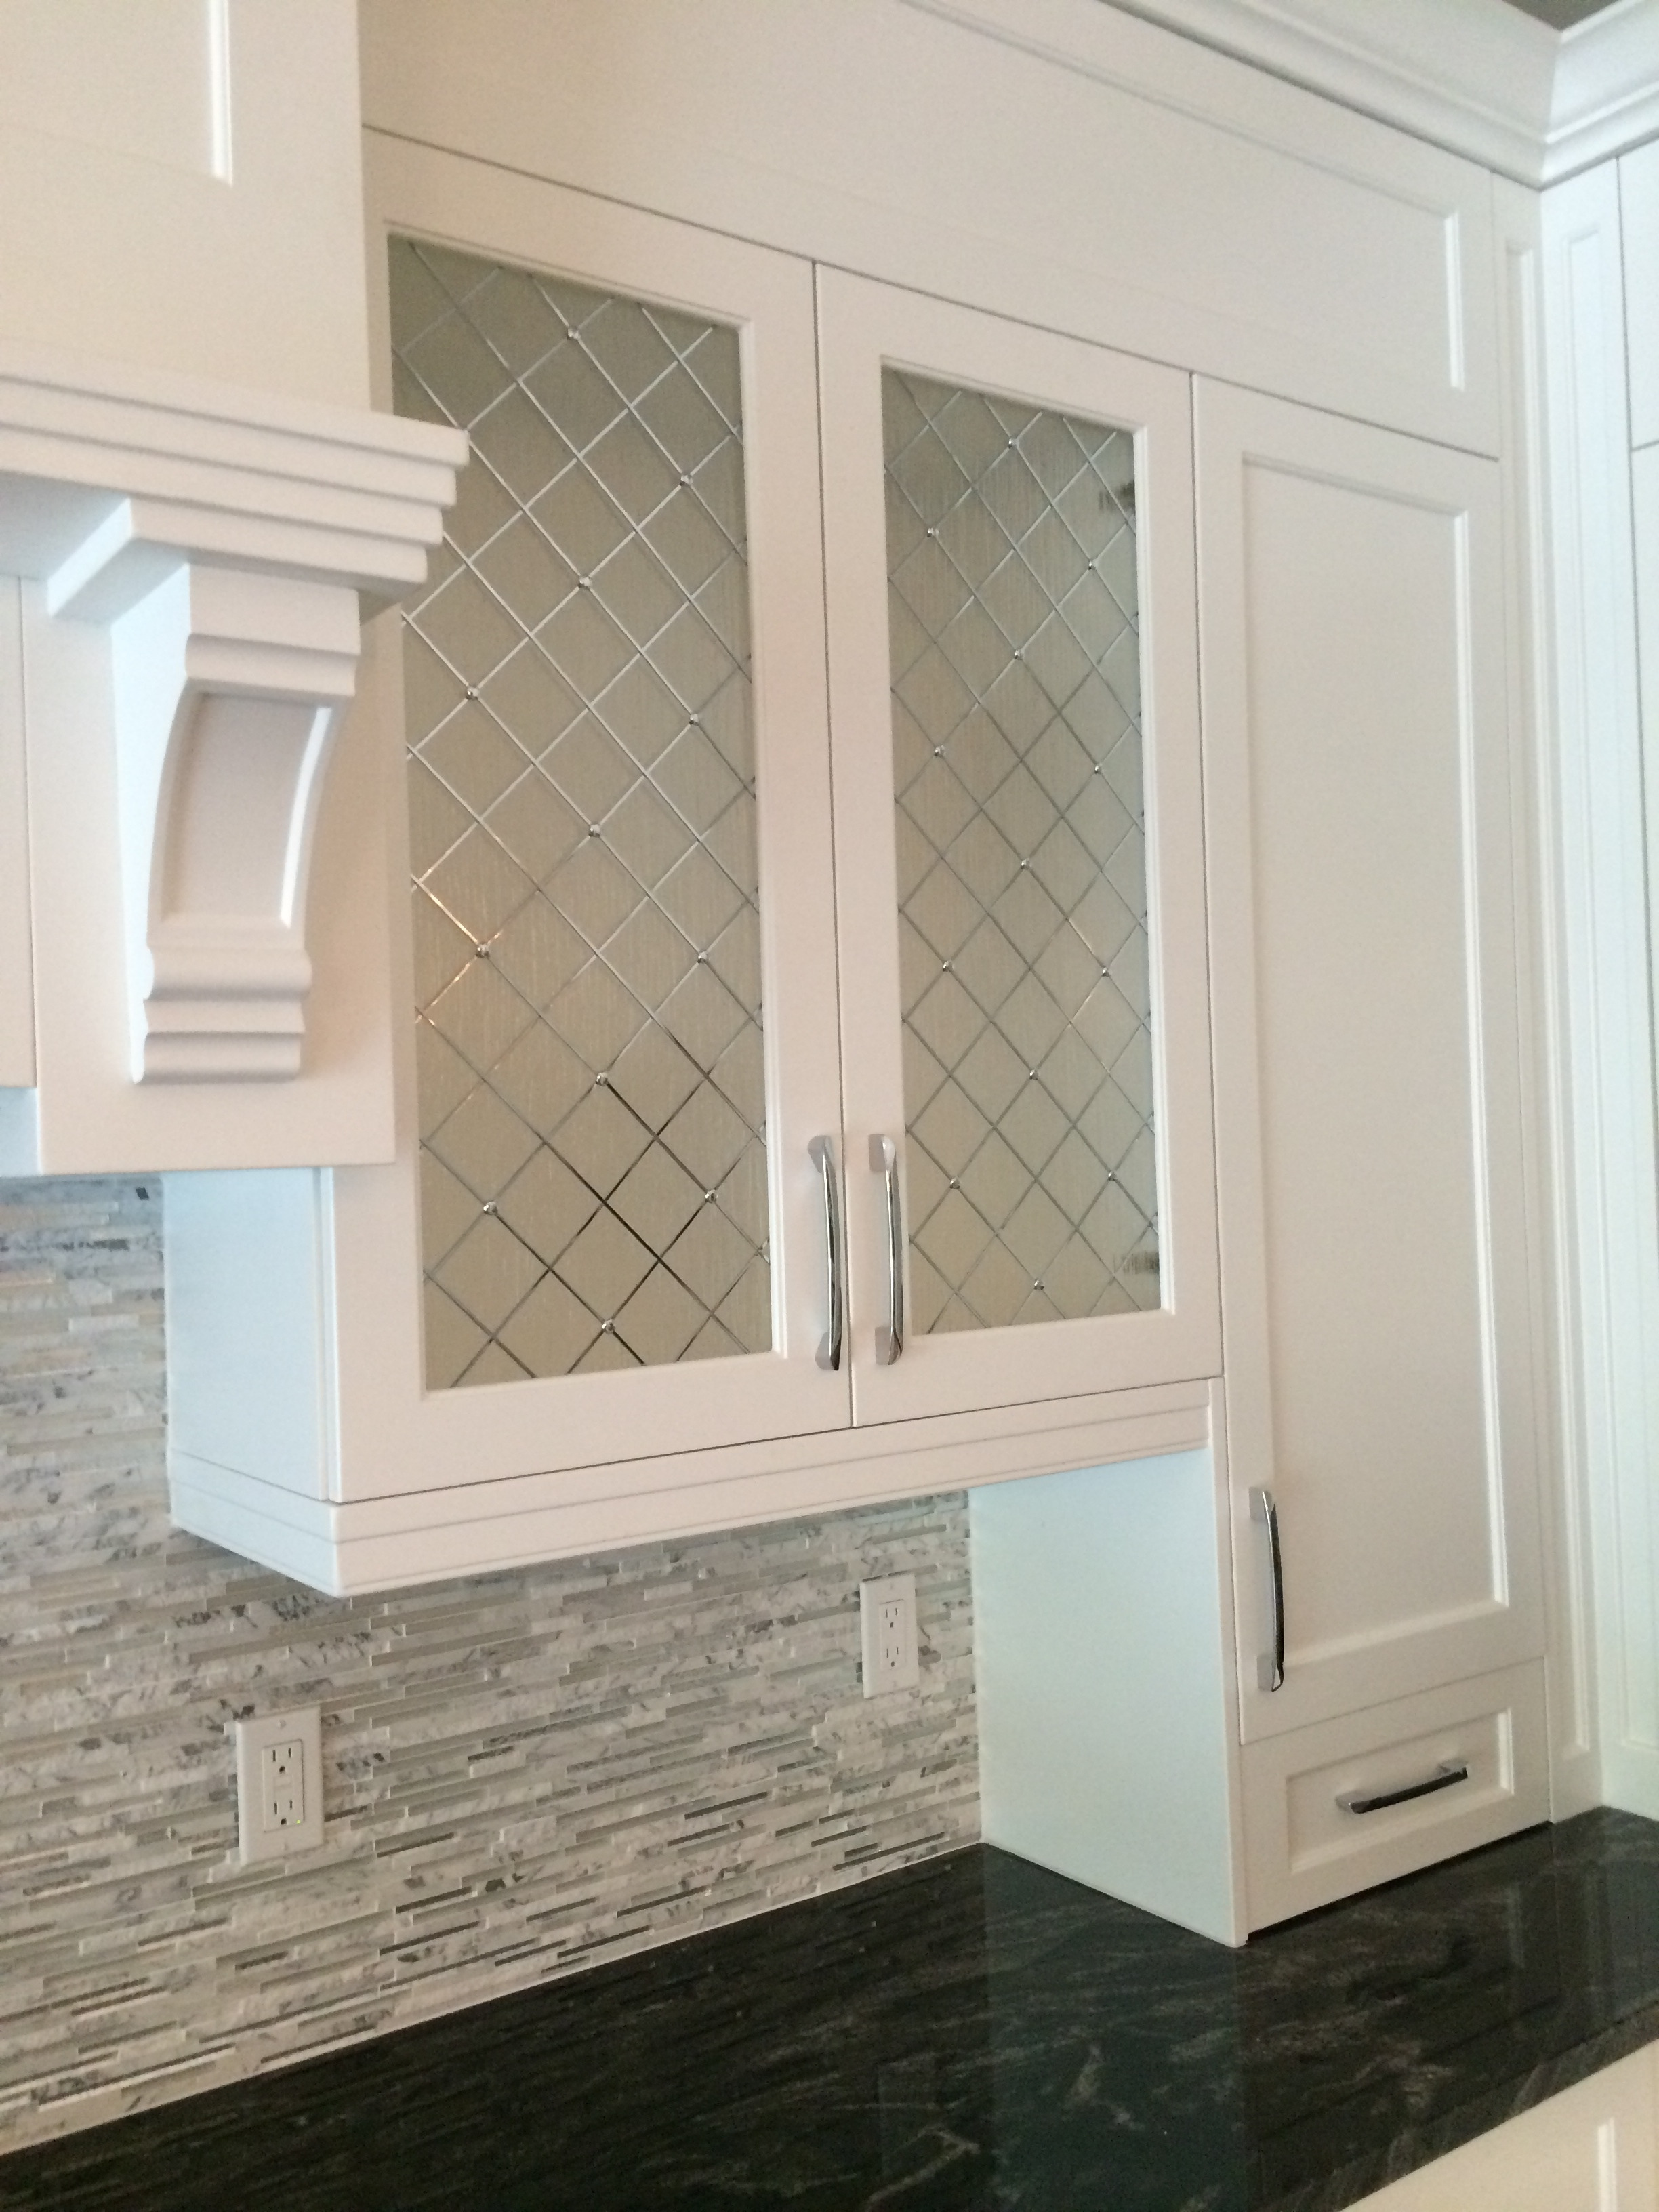 Cabinet Doors Near Me Inspirational Decorative Cabinet Glass Inserts the Glass Shoppe A